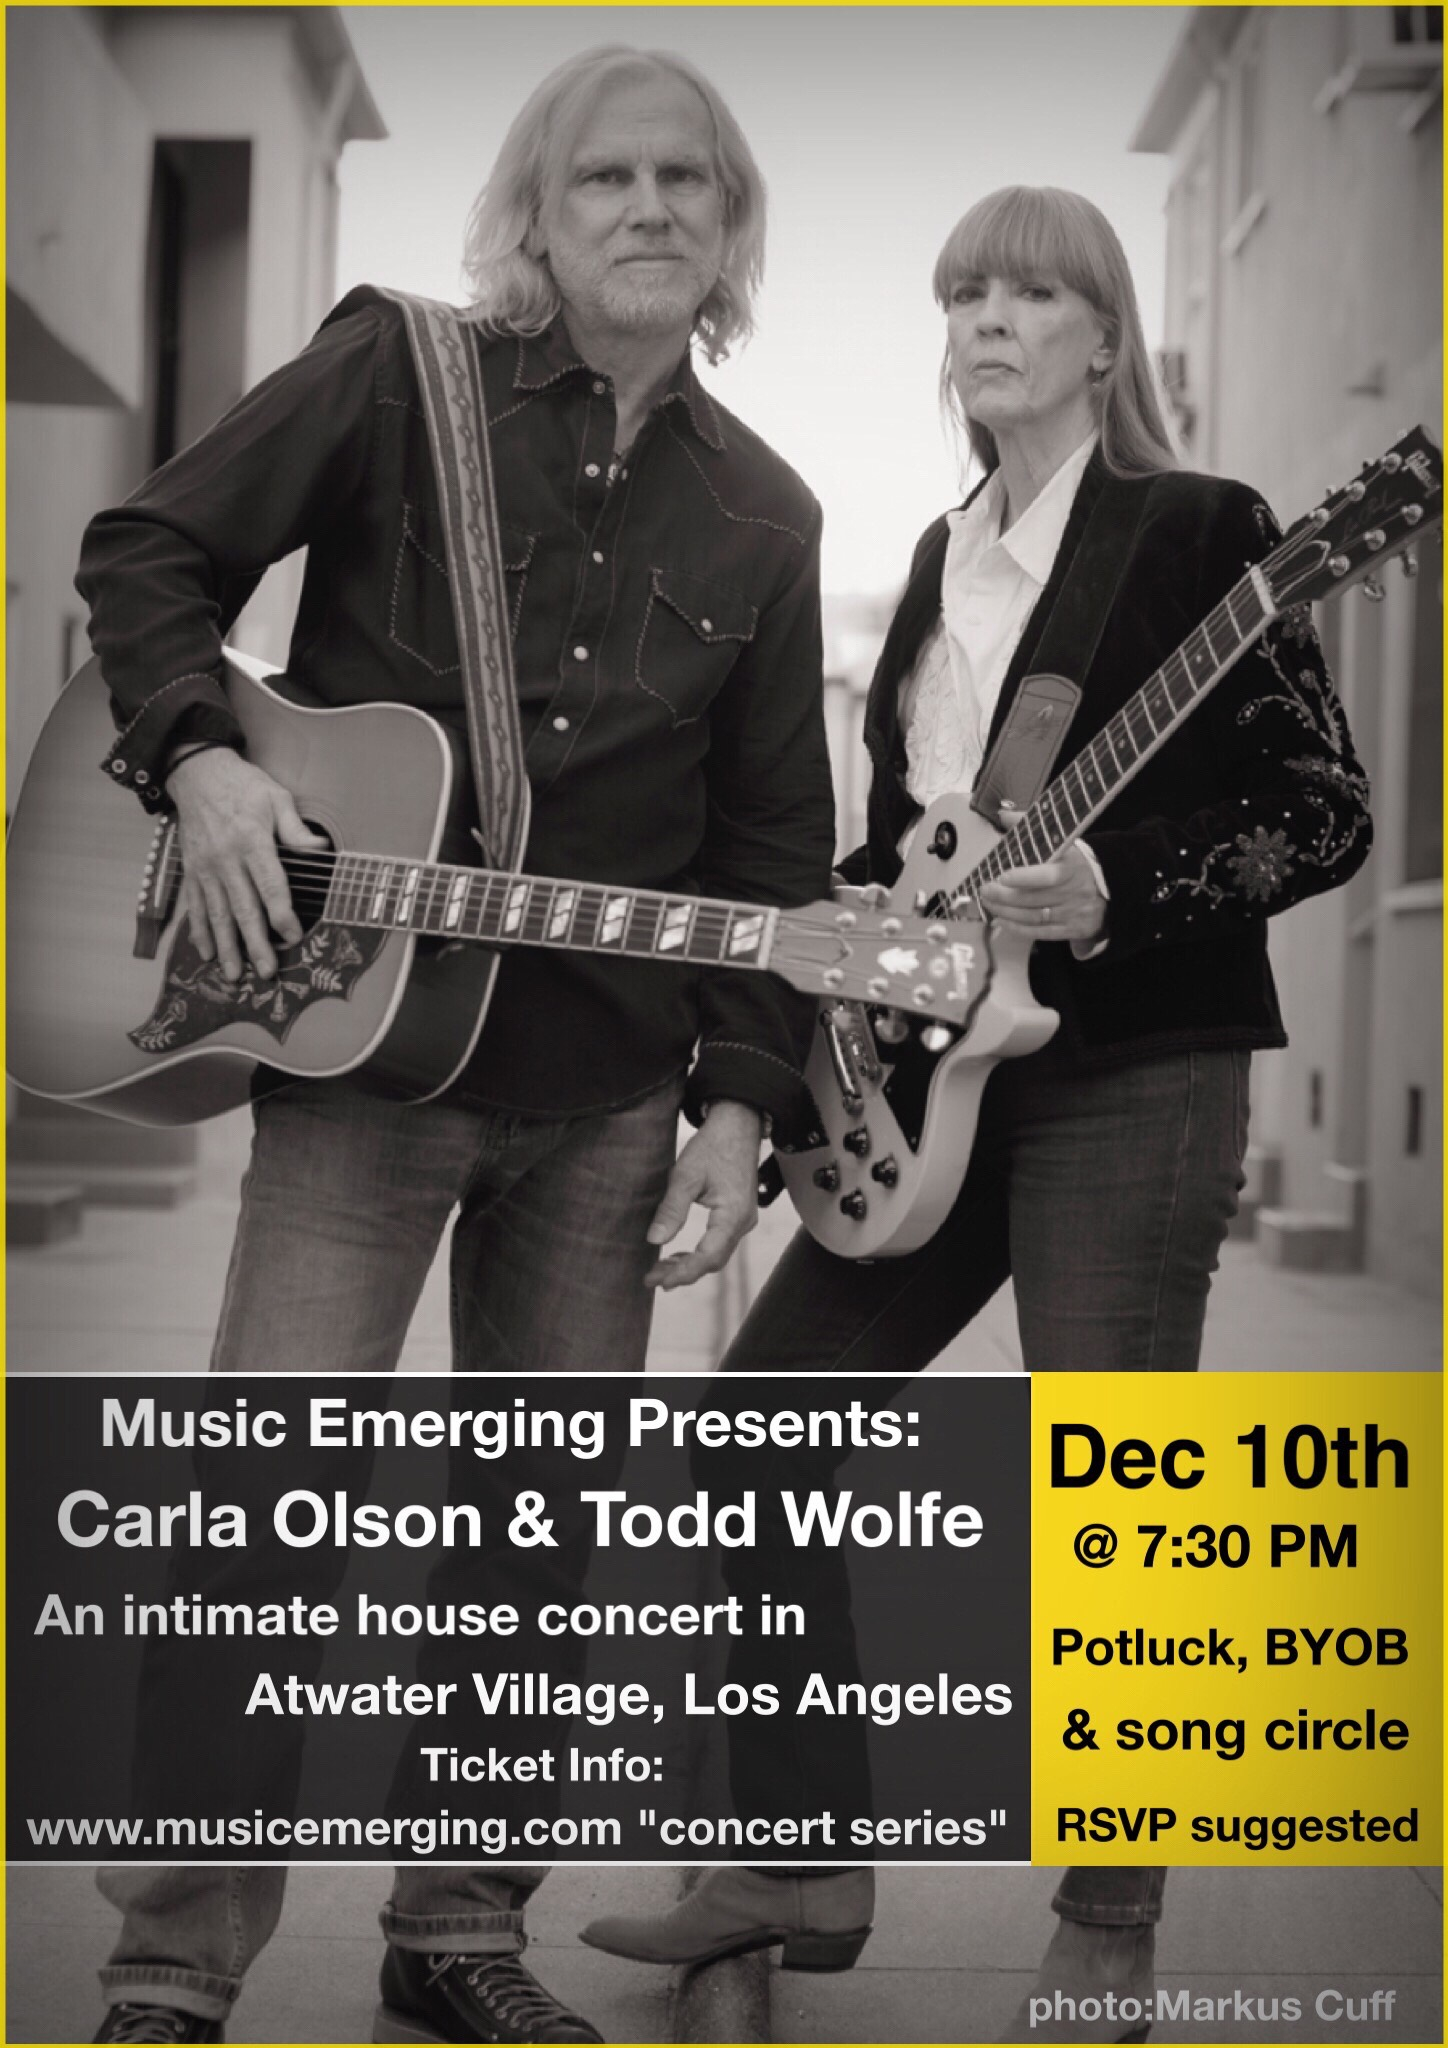 Music Emerging  presents another stellar concert in Atwater Village, Los Angeles with artists Carla Olson and Todd Wolfe. This is our 6th successful show!  Concert will take place in the home of artist  Robert Soffian  Seating is limited so an RSVP ticket is highly recommended. Upon ticket order-you will receive address within a few hours...  TICKETS: available through  EVENTBRITE   Event is BYOB and a dish for pot luck. Plenty of parking in the area. Song circle after if you would like to bring instrument or borrow one.  About the Artists:   Carla Olson  is a singer, songwriter, guitar player and producer. Her 1984 debut album, Midnight Mission, was as leader of the Textones and included Gene Clark, Ry Cooder and Don Henley as guests. A few years later Gene and Carla recorded what many view as the first Americana album, So Rebellious A Lover. Since then Carla has released solo albums and a live record with Mick Taylor.  She is one of the few currently active women record producers and includes among her credits Paul Jones, (Manfred Mann), Phil Upchurch, Jake Andrews, Joe Louis Walker, Chubby Tavares and Barry Goldberg (Electric Flag, The Rides).  Her recent duets album, Have Harmony, Will Travel, featured Richie Furay, Rob Waller, Juice Newton, John York and James Intveldt.    Todd Wolfe  spent five years touring the world with Sheryl Crow including writing and recording with Sheryl.  Since Todd's departure from Sheryl's band, he has spent the past 15 years touring Europe with his own band and releasing nine solo albums.  Todd has also recorded with legendary Mountain guitarist-singer Leslie West, lending his guitar to two Mountain albums and three of Leslie's solo albums.  Before Todd's work with Sheryl Crow and Leslie West he recorded and toured Japan with Carla Olson.  Some of Todd's songs have been covered by artists, Stevie Nicks, Faith Hill and Deborah Coleman, to name a few.  Together Carla & Todd perform original songs and some favorites by others in an int